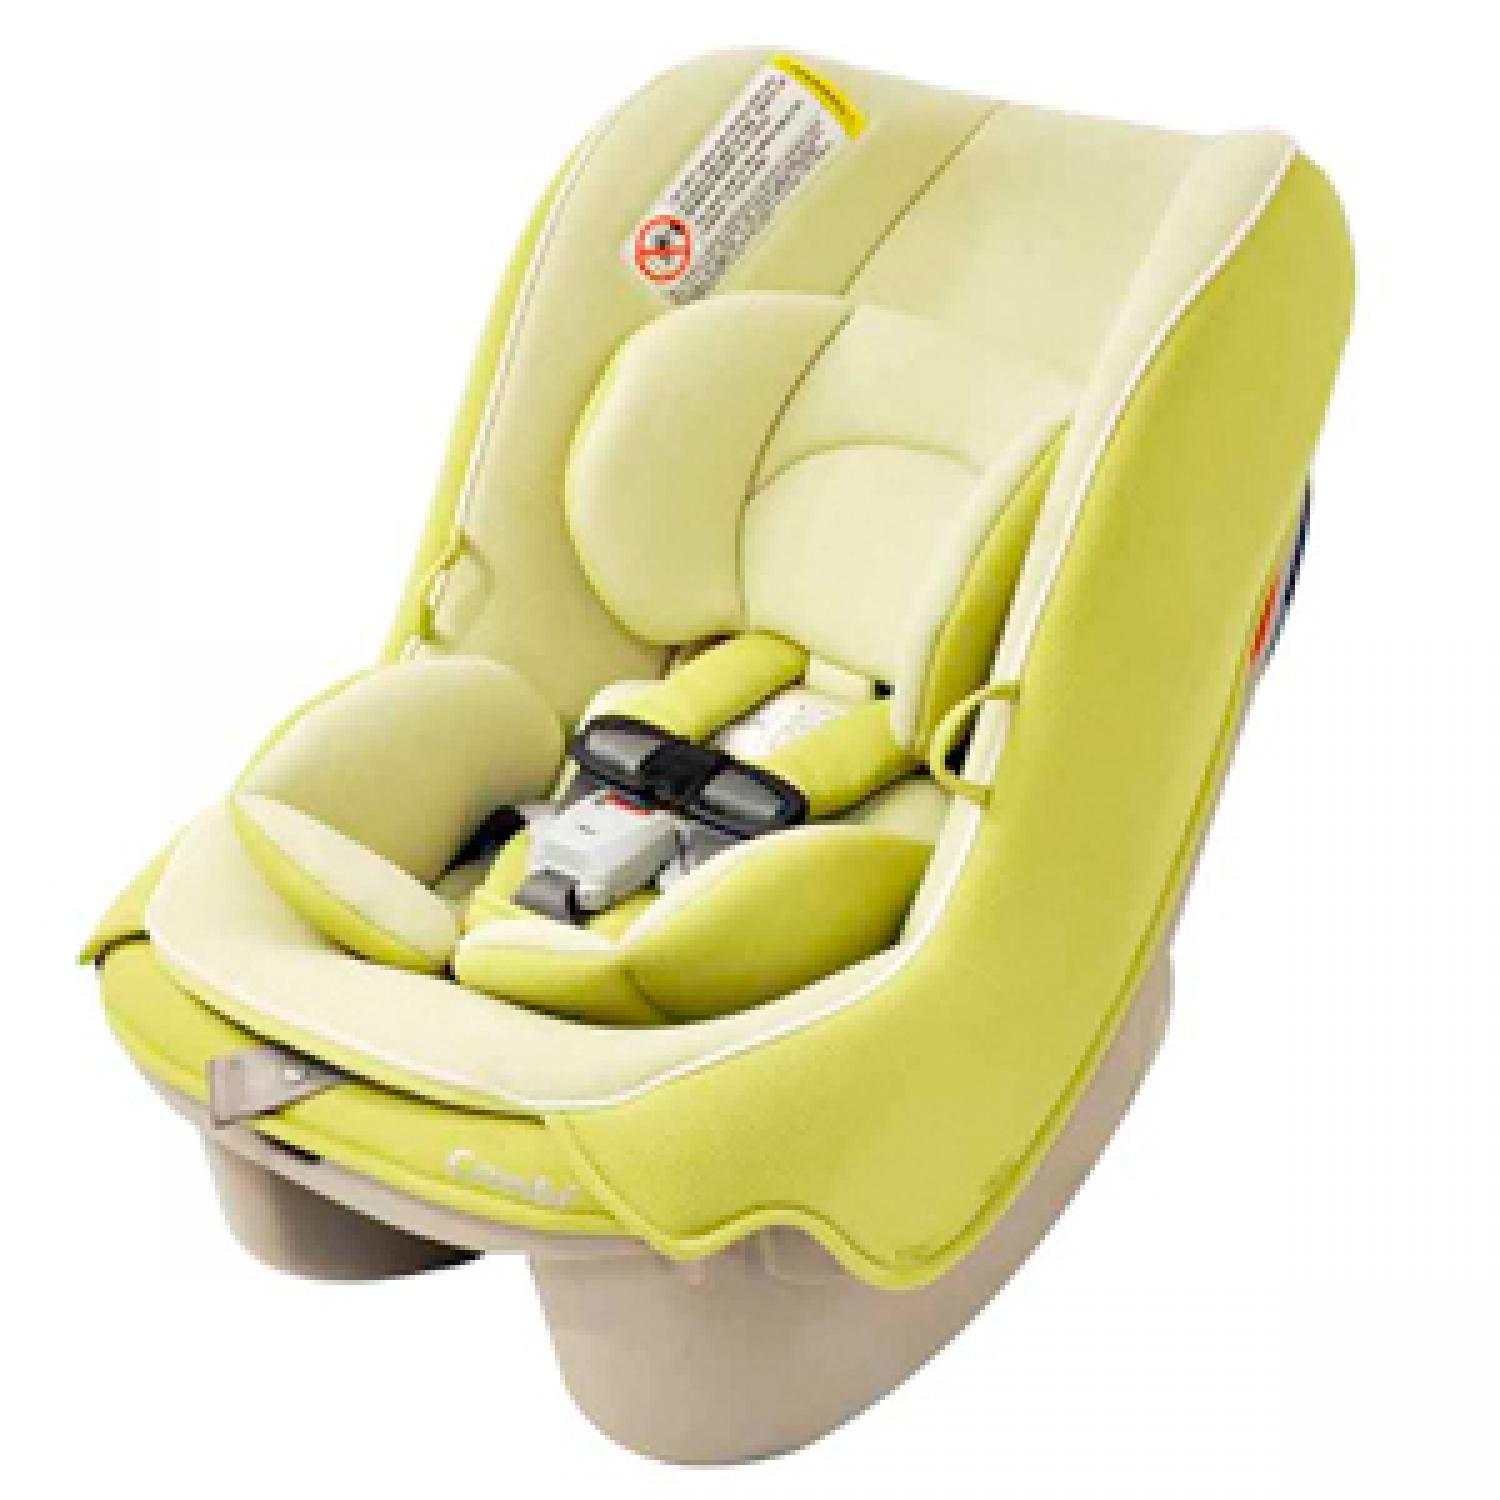 faq traveling with car seats on airplanes parenting. Black Bedroom Furniture Sets. Home Design Ideas